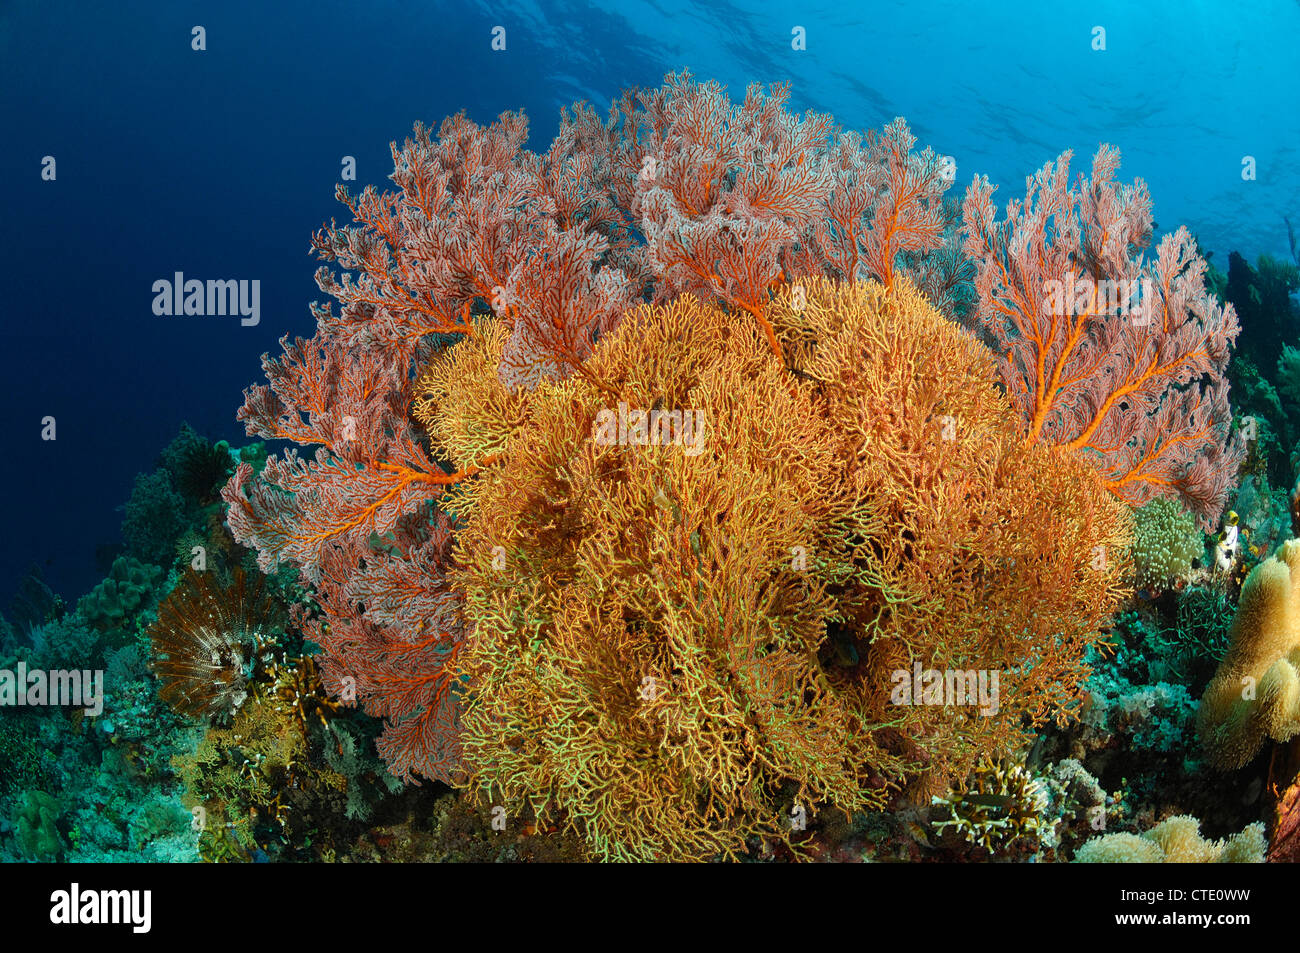 Coral Reef of Bunaken, North Sulawesi, Indonesia - Stock Image